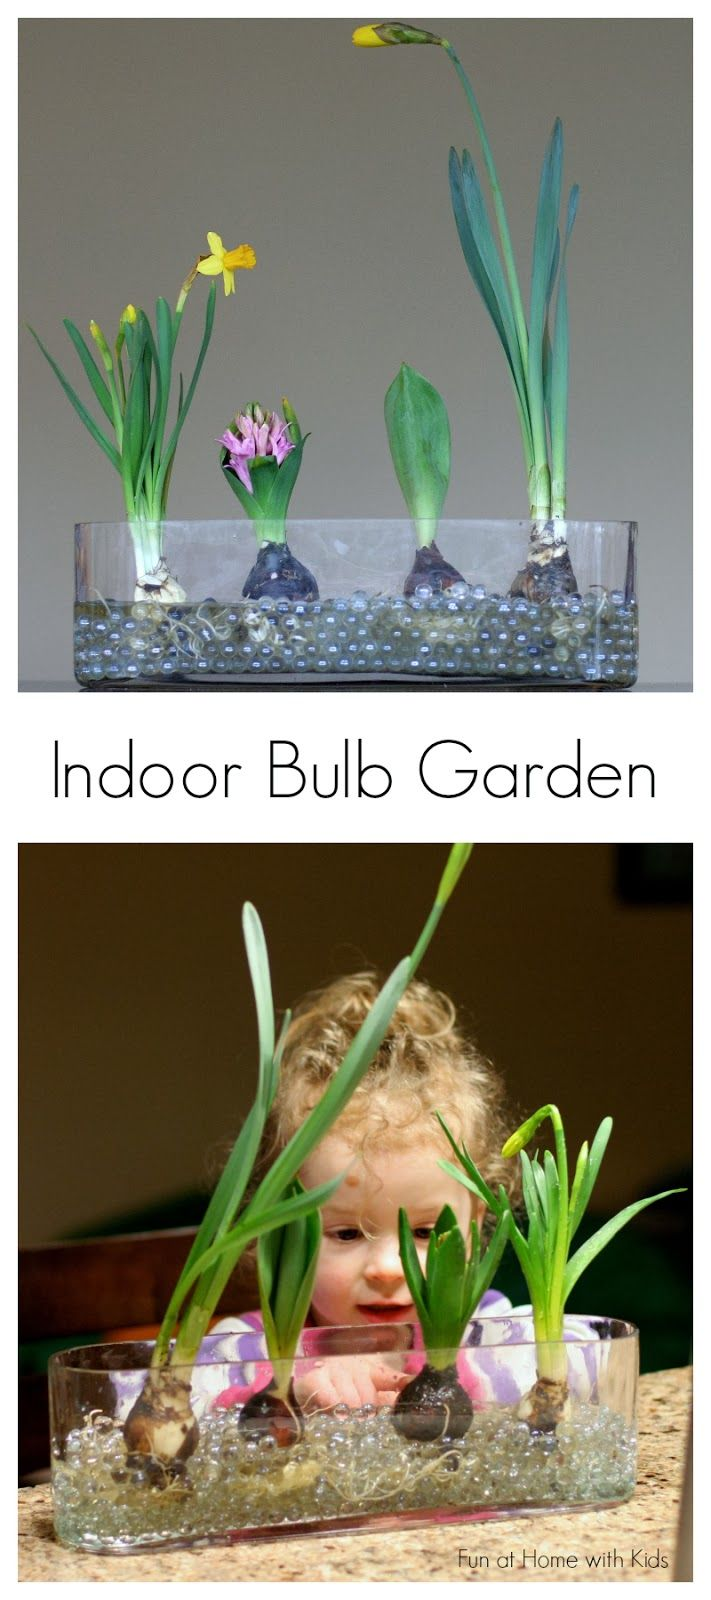 Learning about Spring Bulbs from Fun at Home with Kids - Repinned by Therapy Source, Inc. - txsource.net